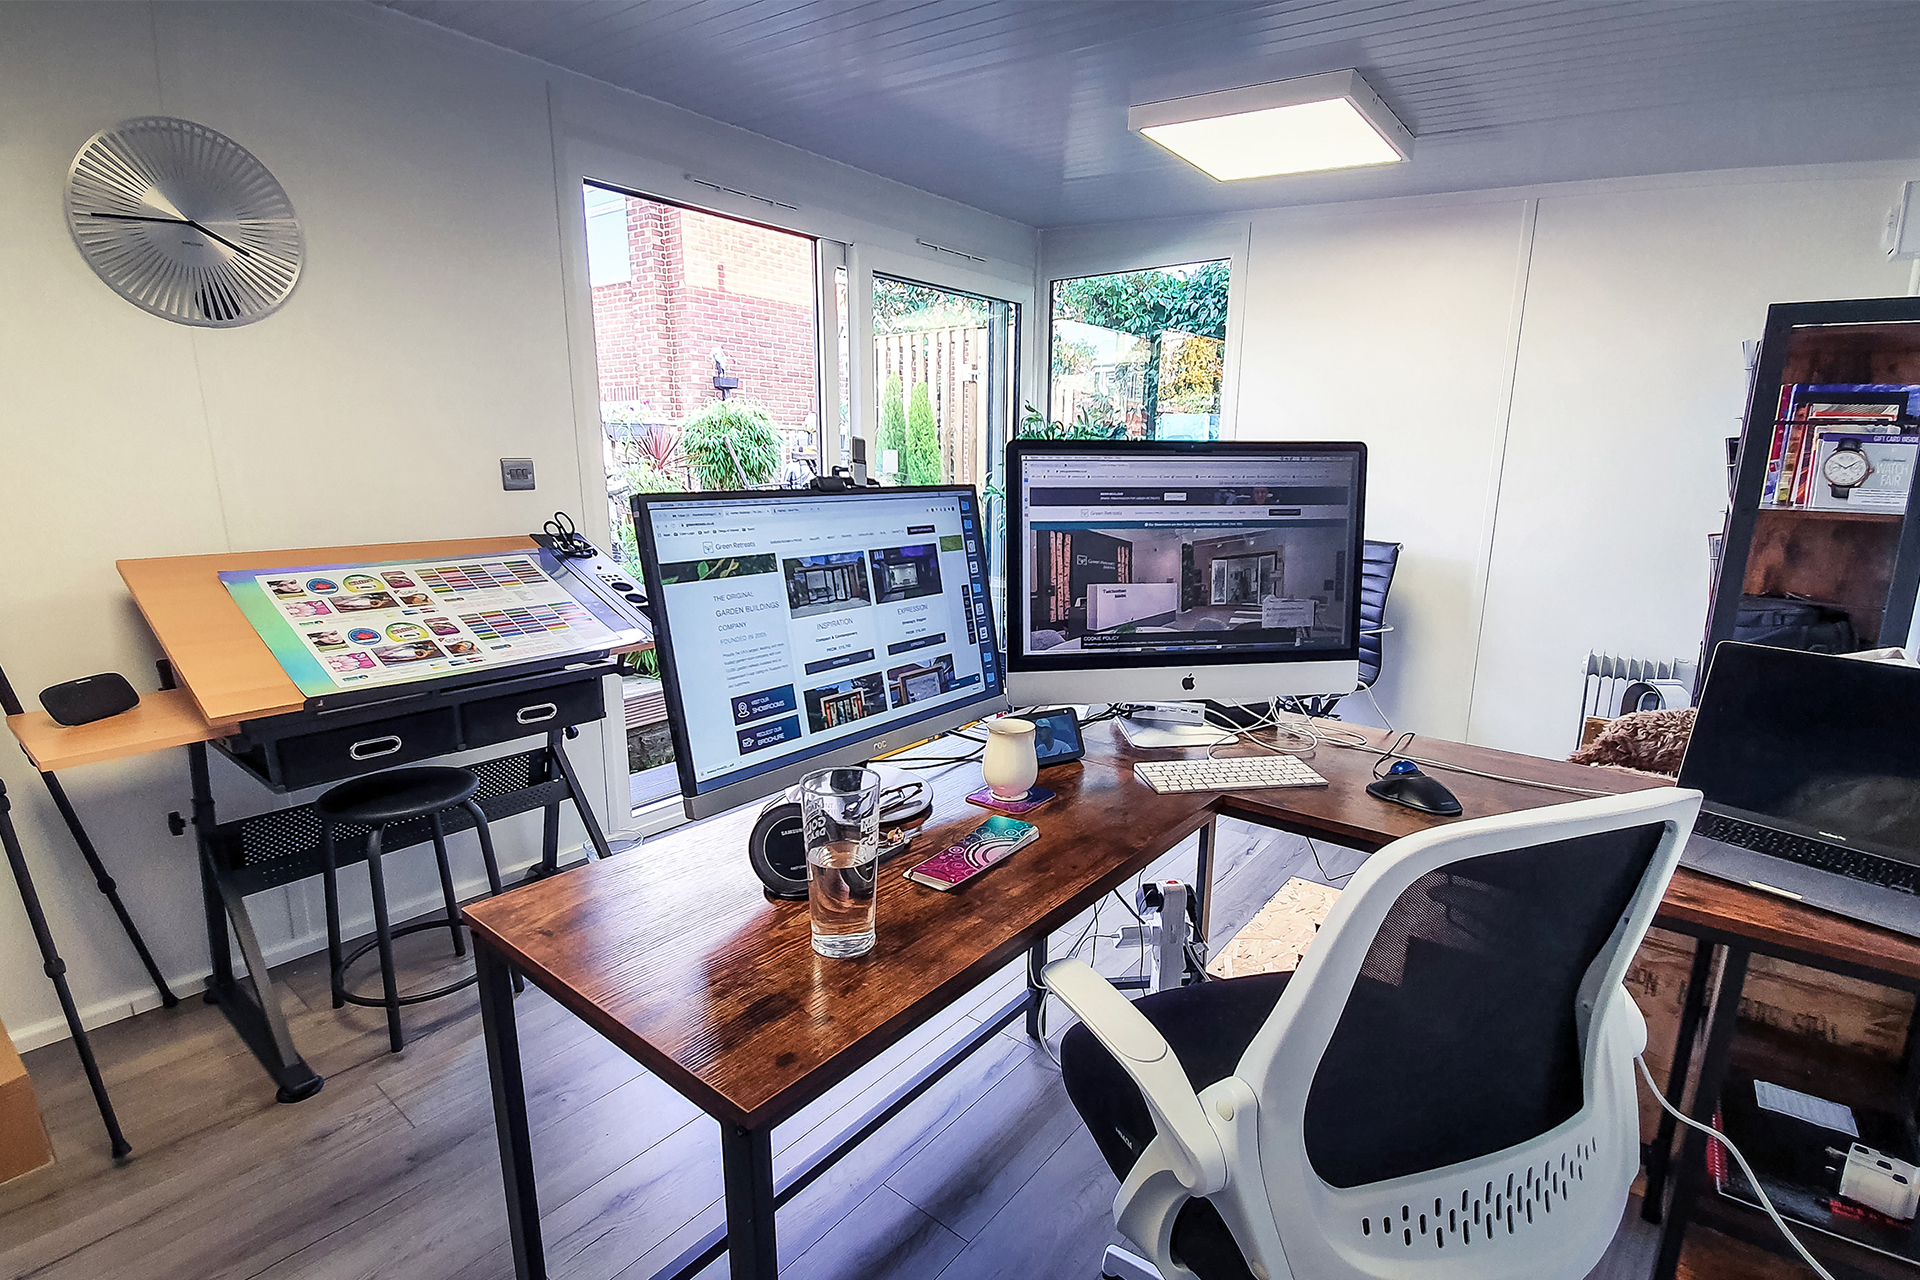 Home garden office with desks and computers